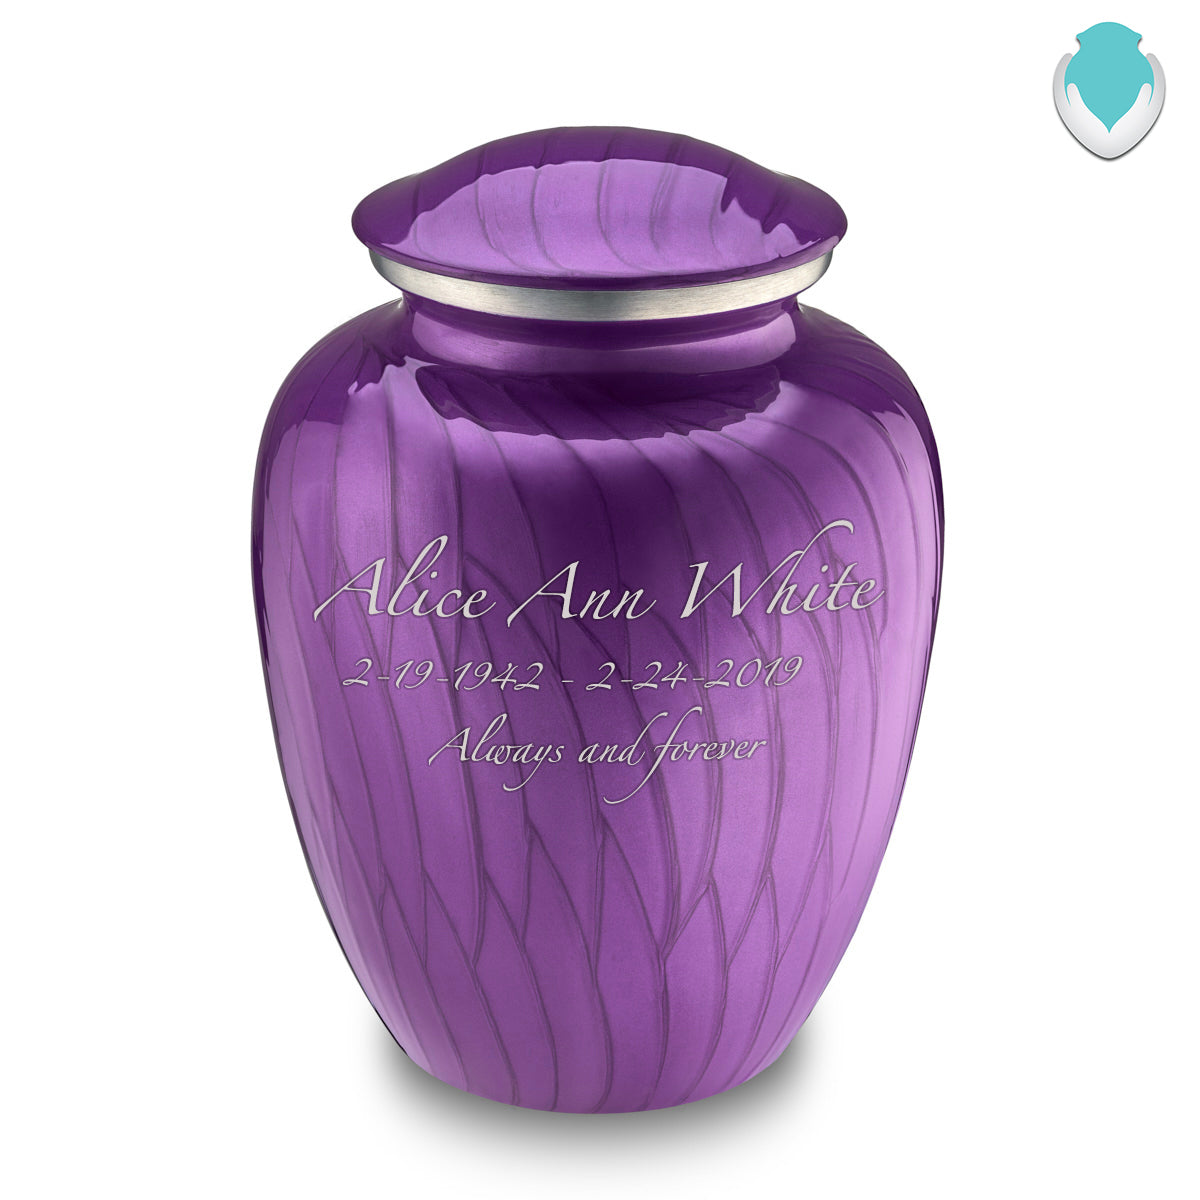 Adult Embrace Pearl Purple Cremation Urn with Custom Engraving